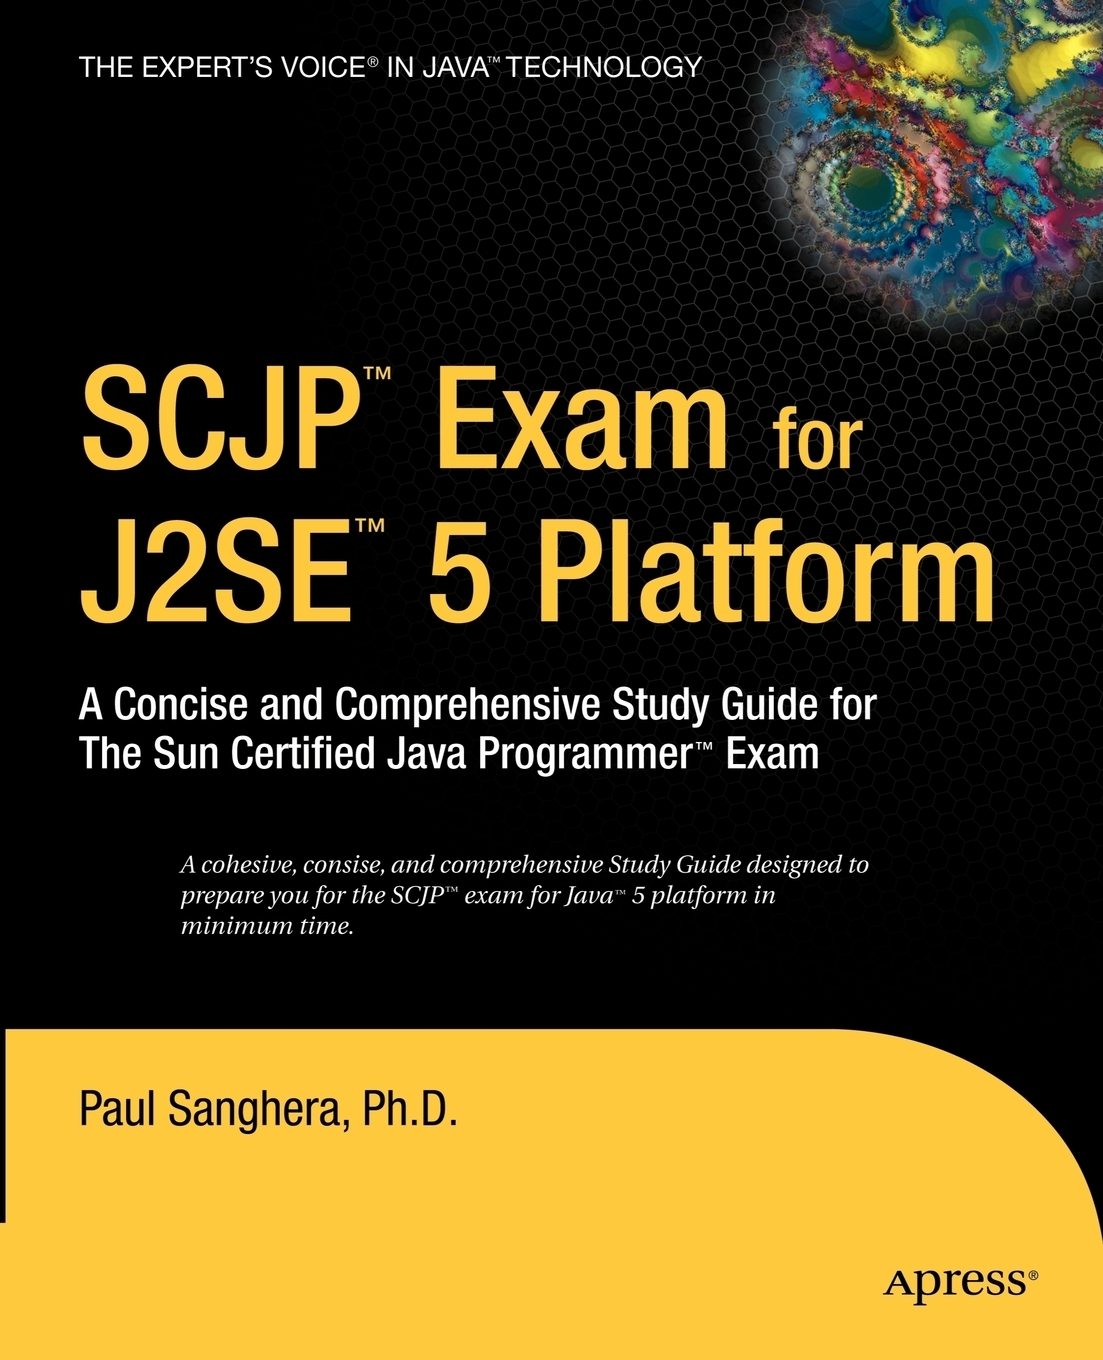 SCJP Exam for J2SE 5. A Concise and Comprehensive Study Guide for the Sun Certified Java Programmer Exam